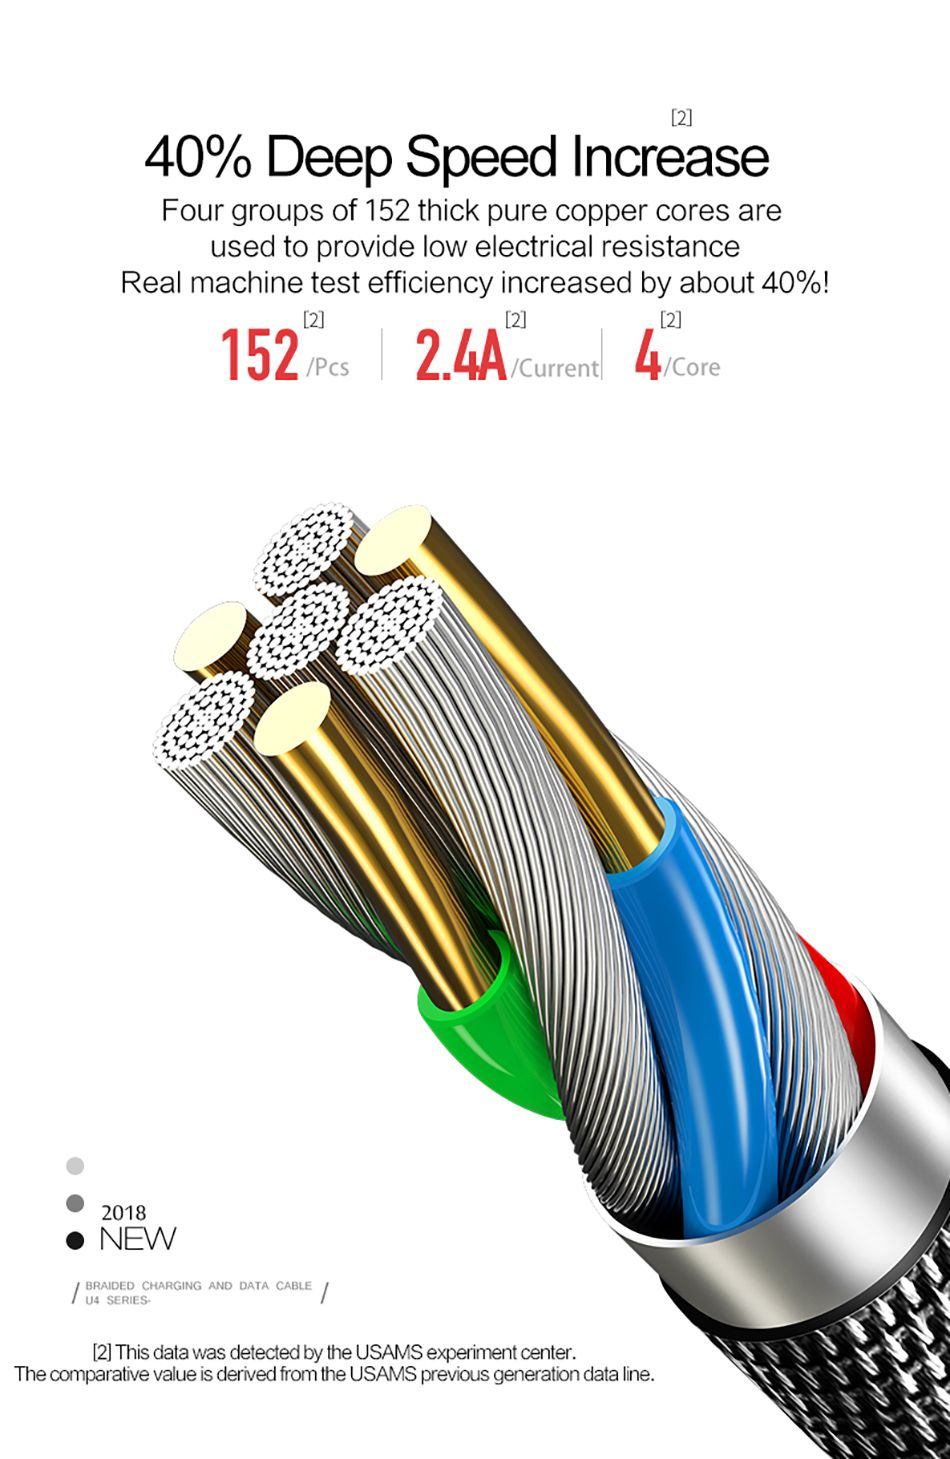 Https Www Aliexpress Com Item 32885453762 Html Spm 2114 11010108 06001 119 748f649b9hv4to Data Cable Phone Cables Cable